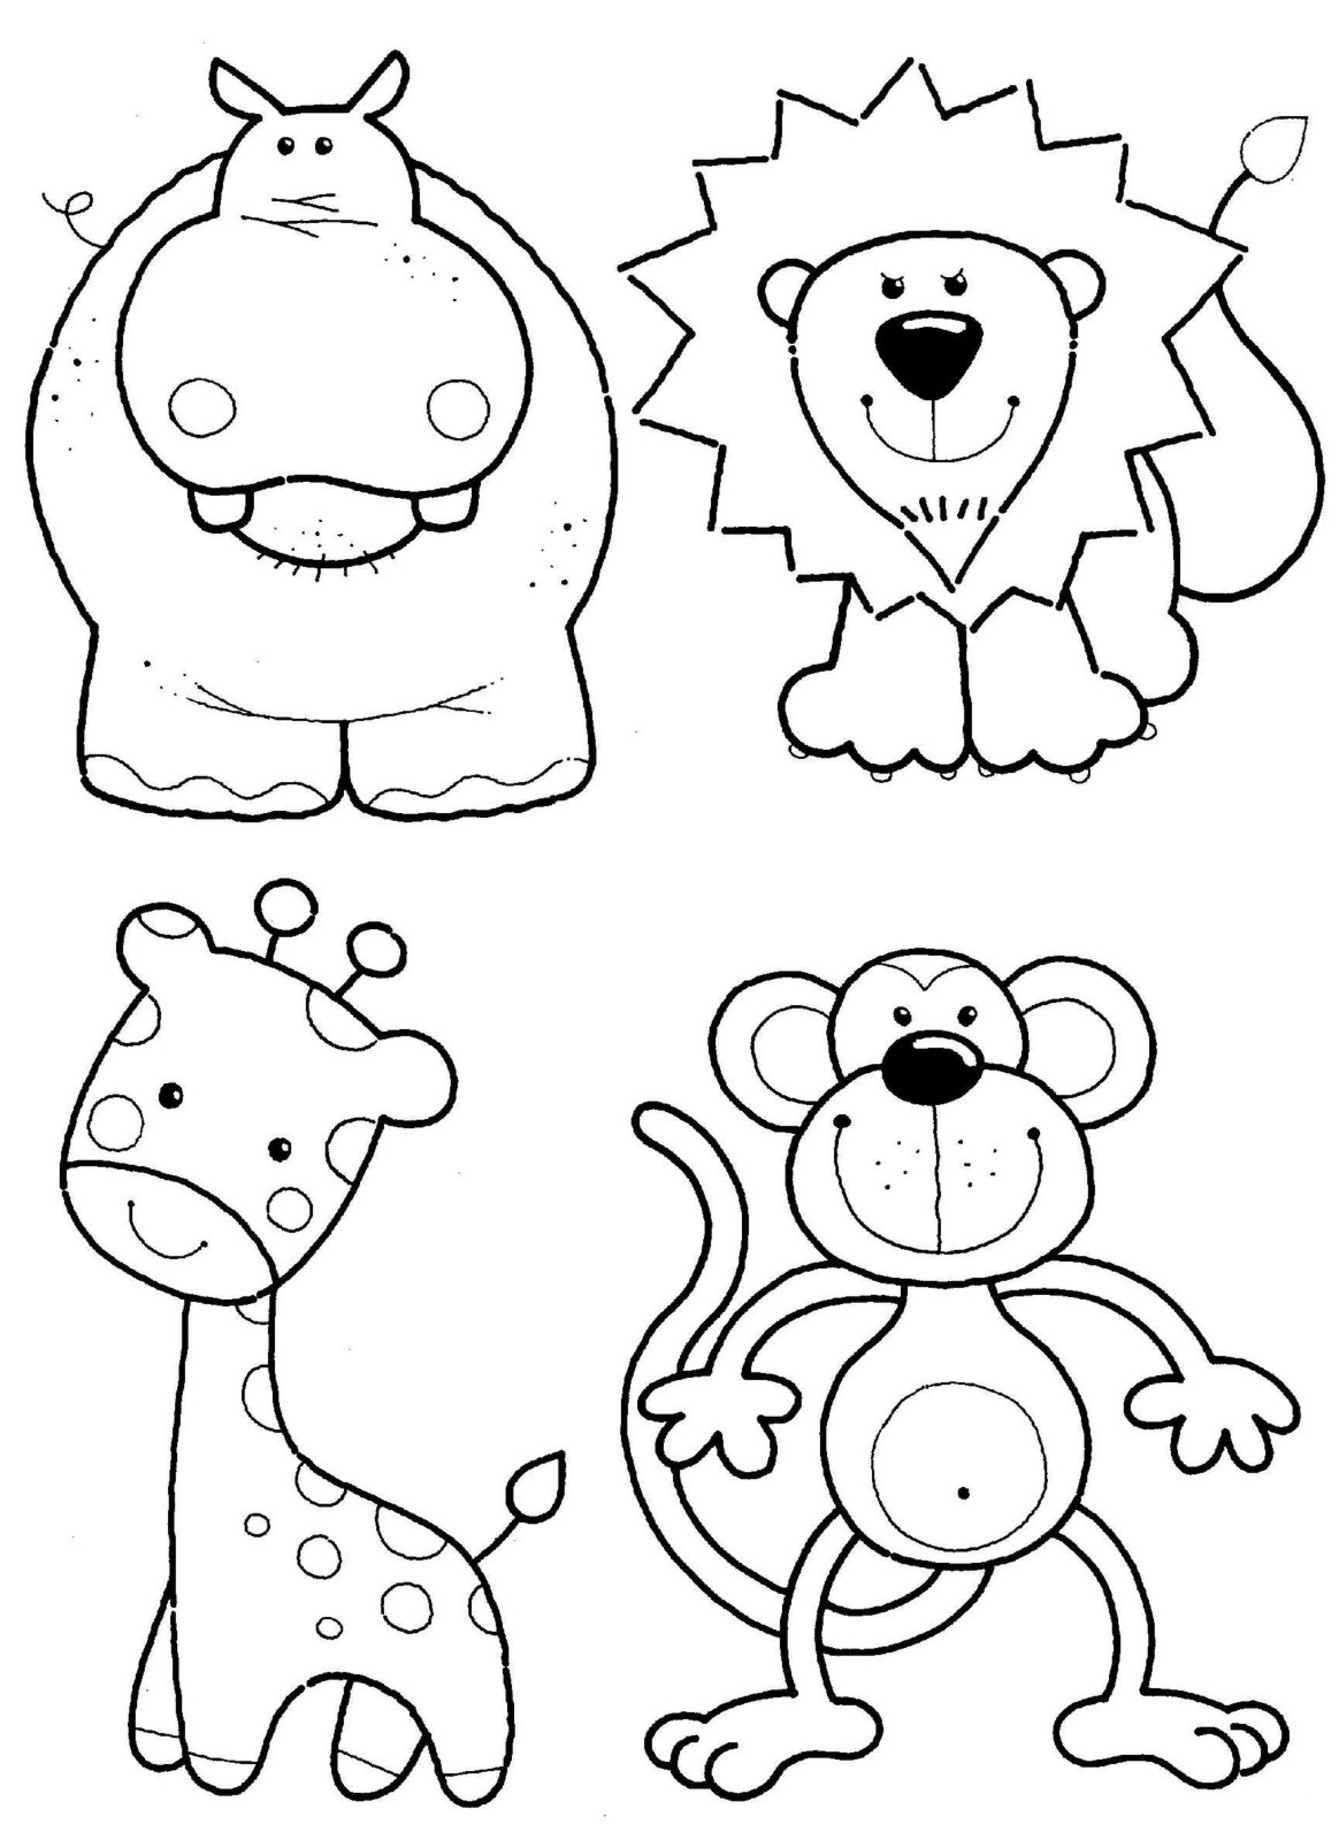 coloring images for kids zebra coloring pages free printable kids coloring pages coloring for images kids